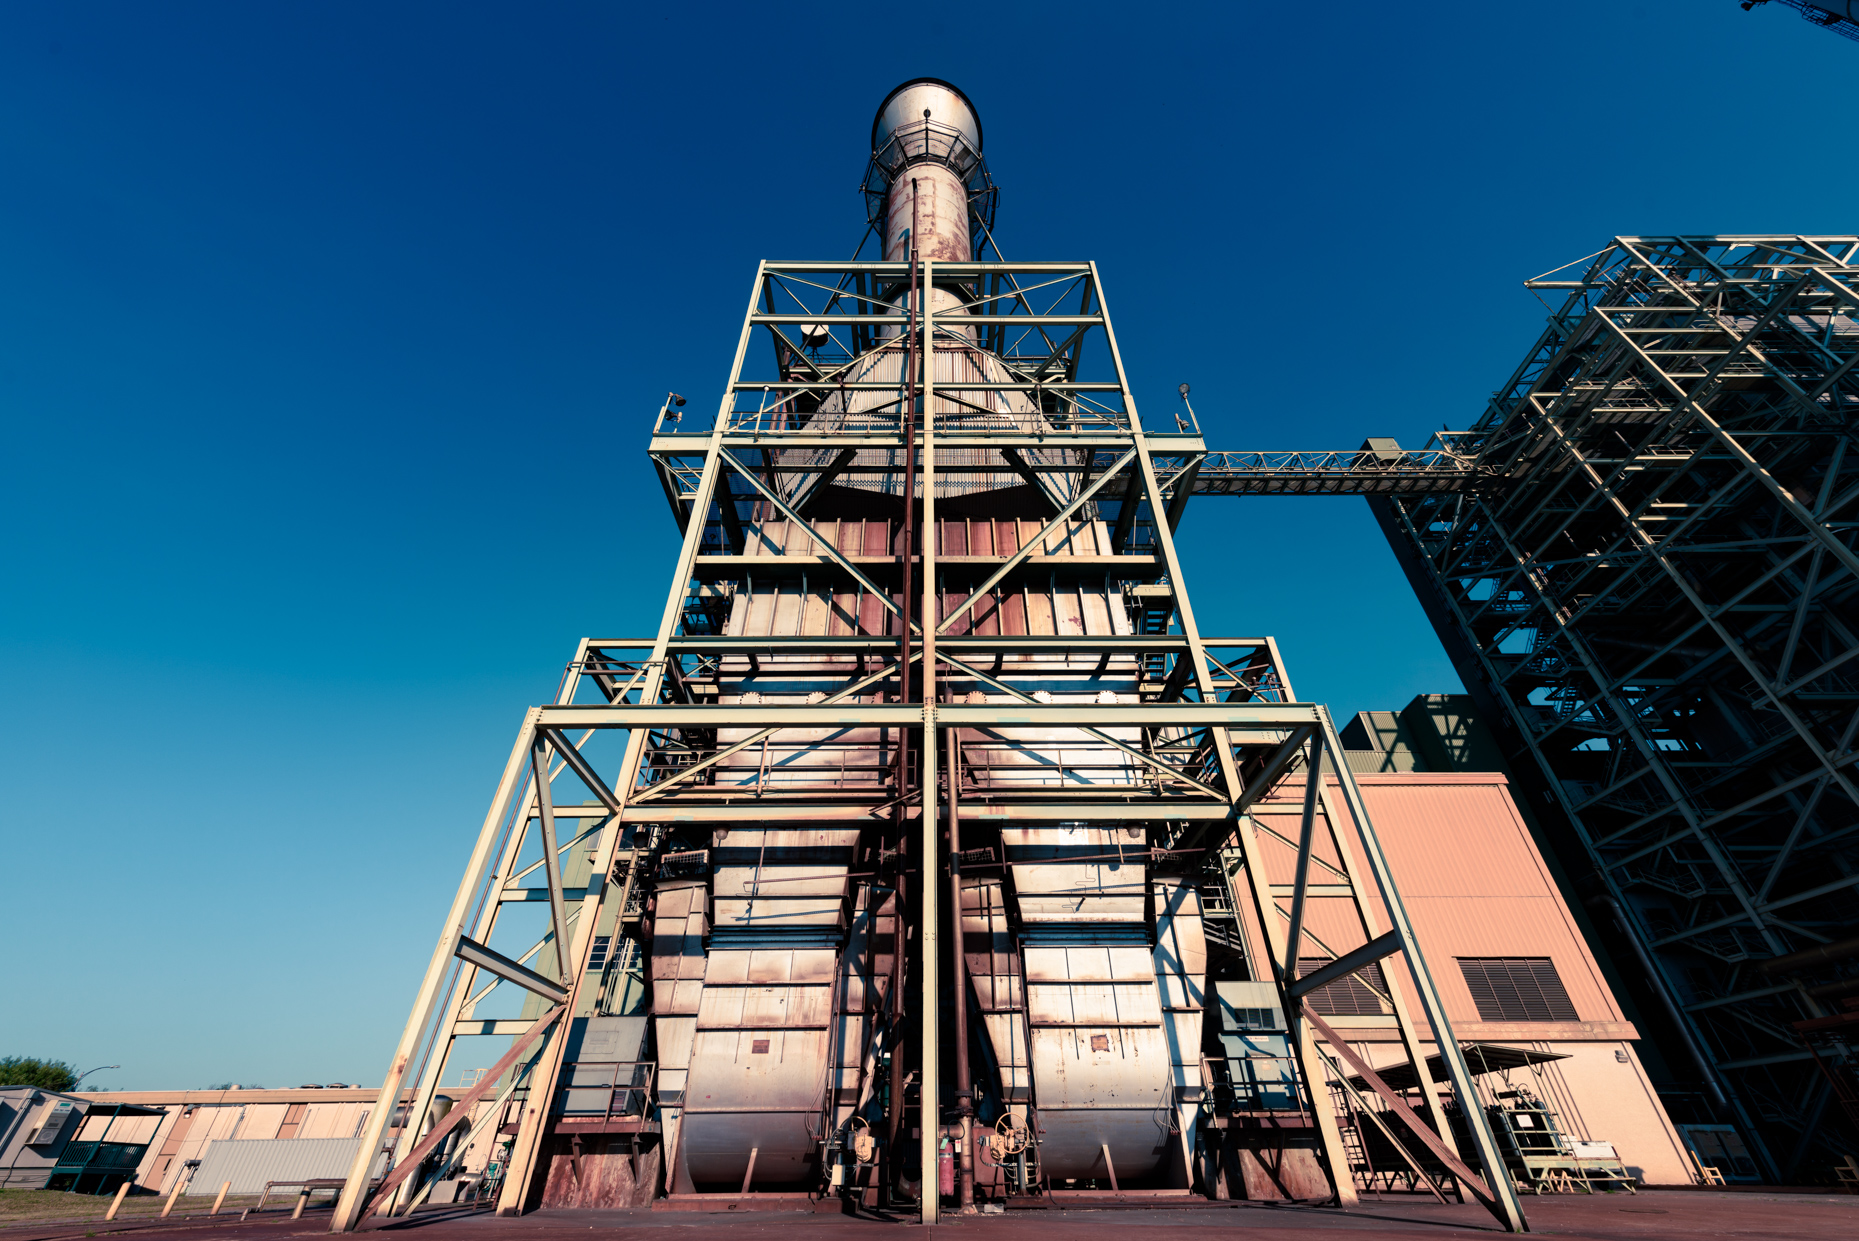 /Texas-Commercial-Industrial-photographers-Austin-Energy-power-plant-exterior-furnace